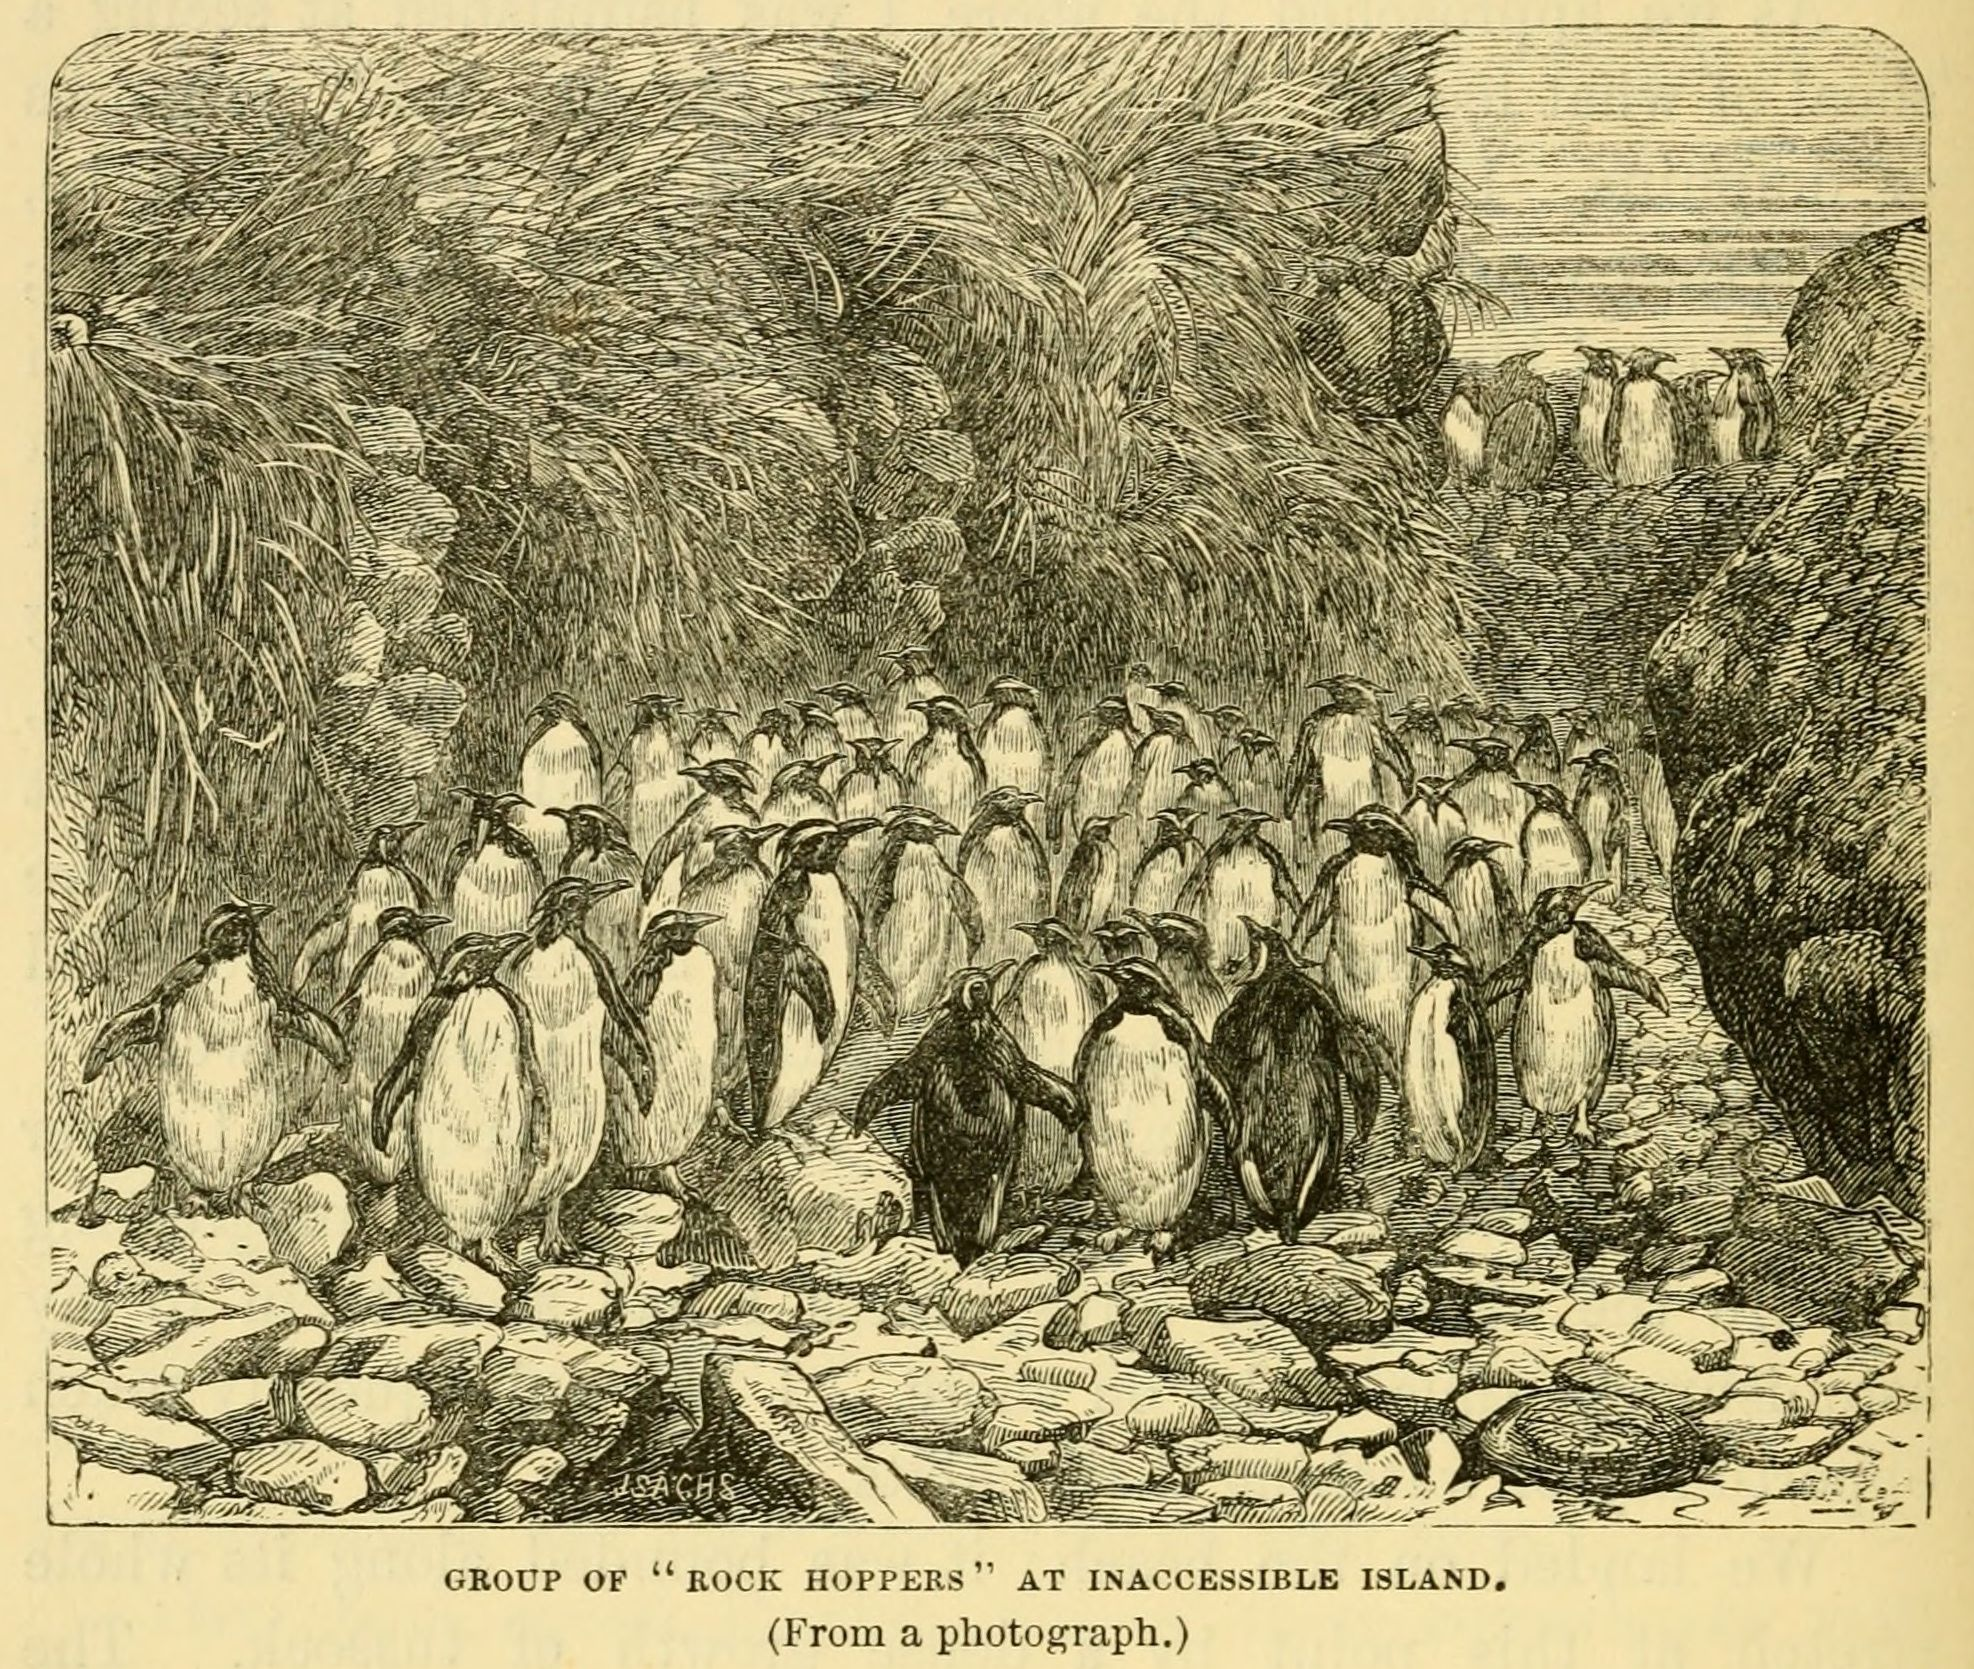 Northern rockhopper penguins on Inaccessible Island, drawn by H. N. Moseley, the naturalist aboard HMS Challenger in 1879.